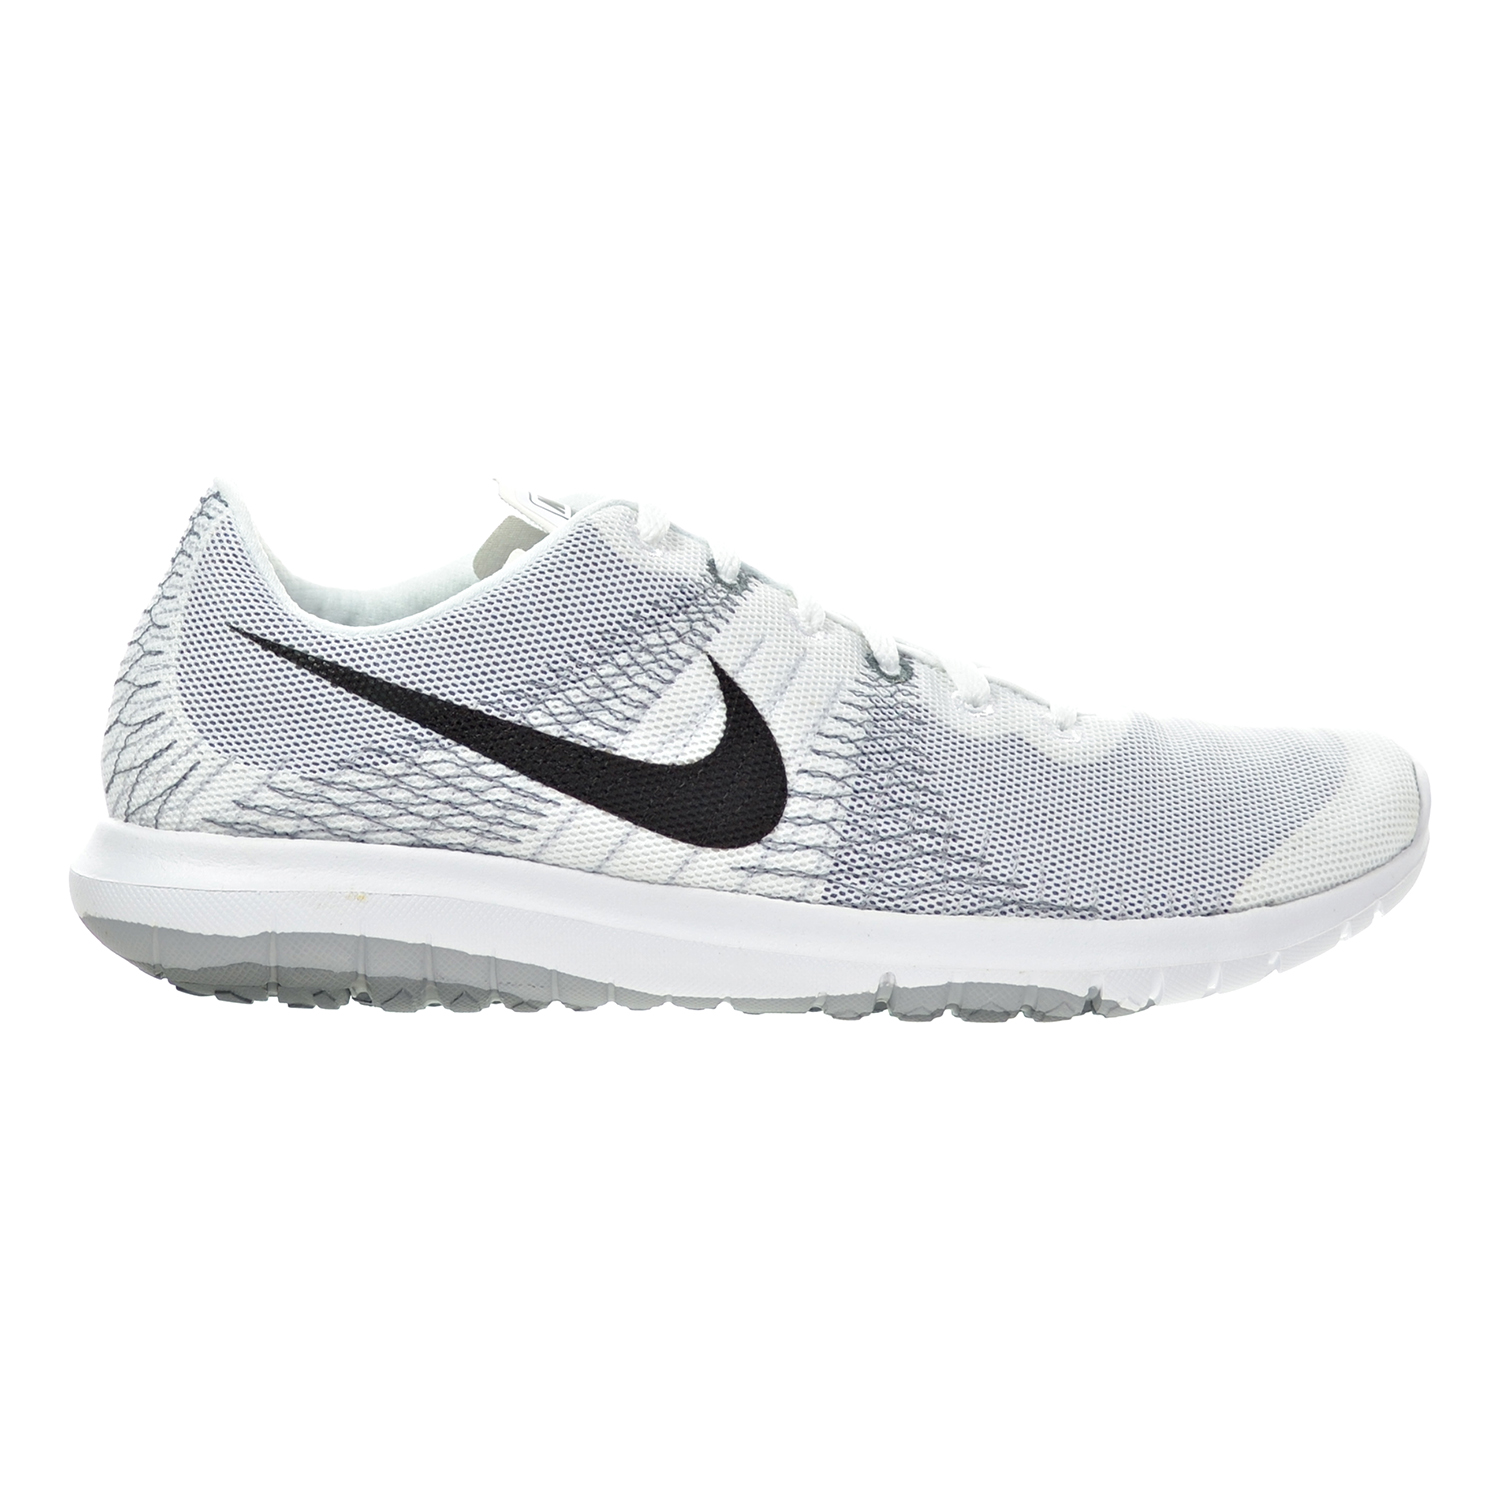 Cheap Nike free run 5.0 v3 womens shoe size 7 free run 5.0 v3